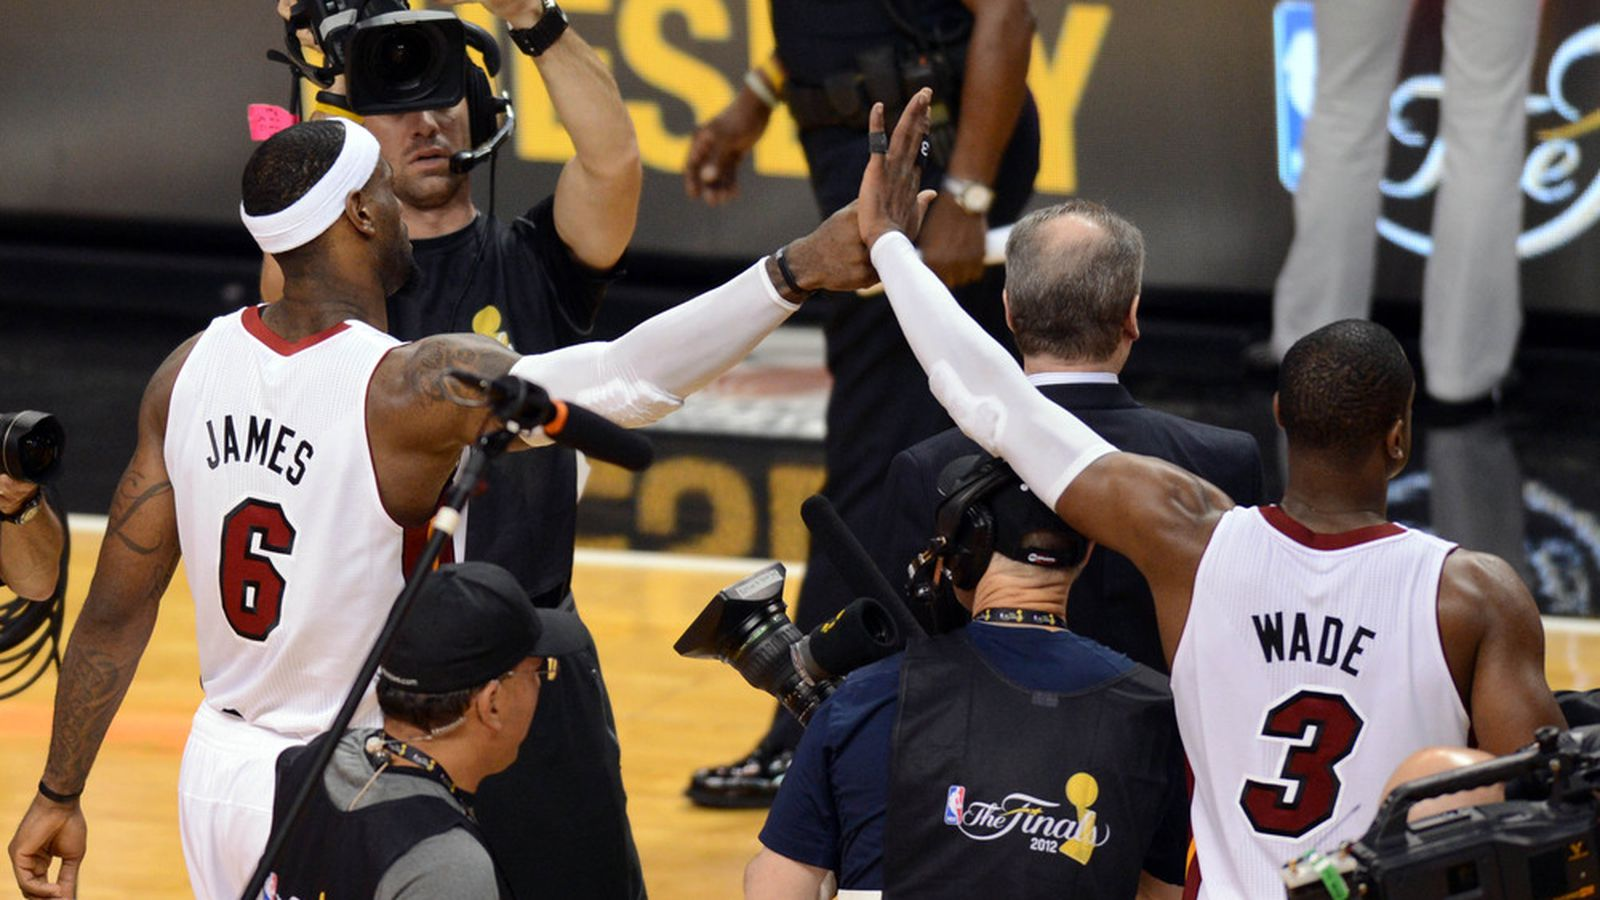 Miami looks to take commanding 3-1 lead in NBA Finals - Hot Hot Hoops